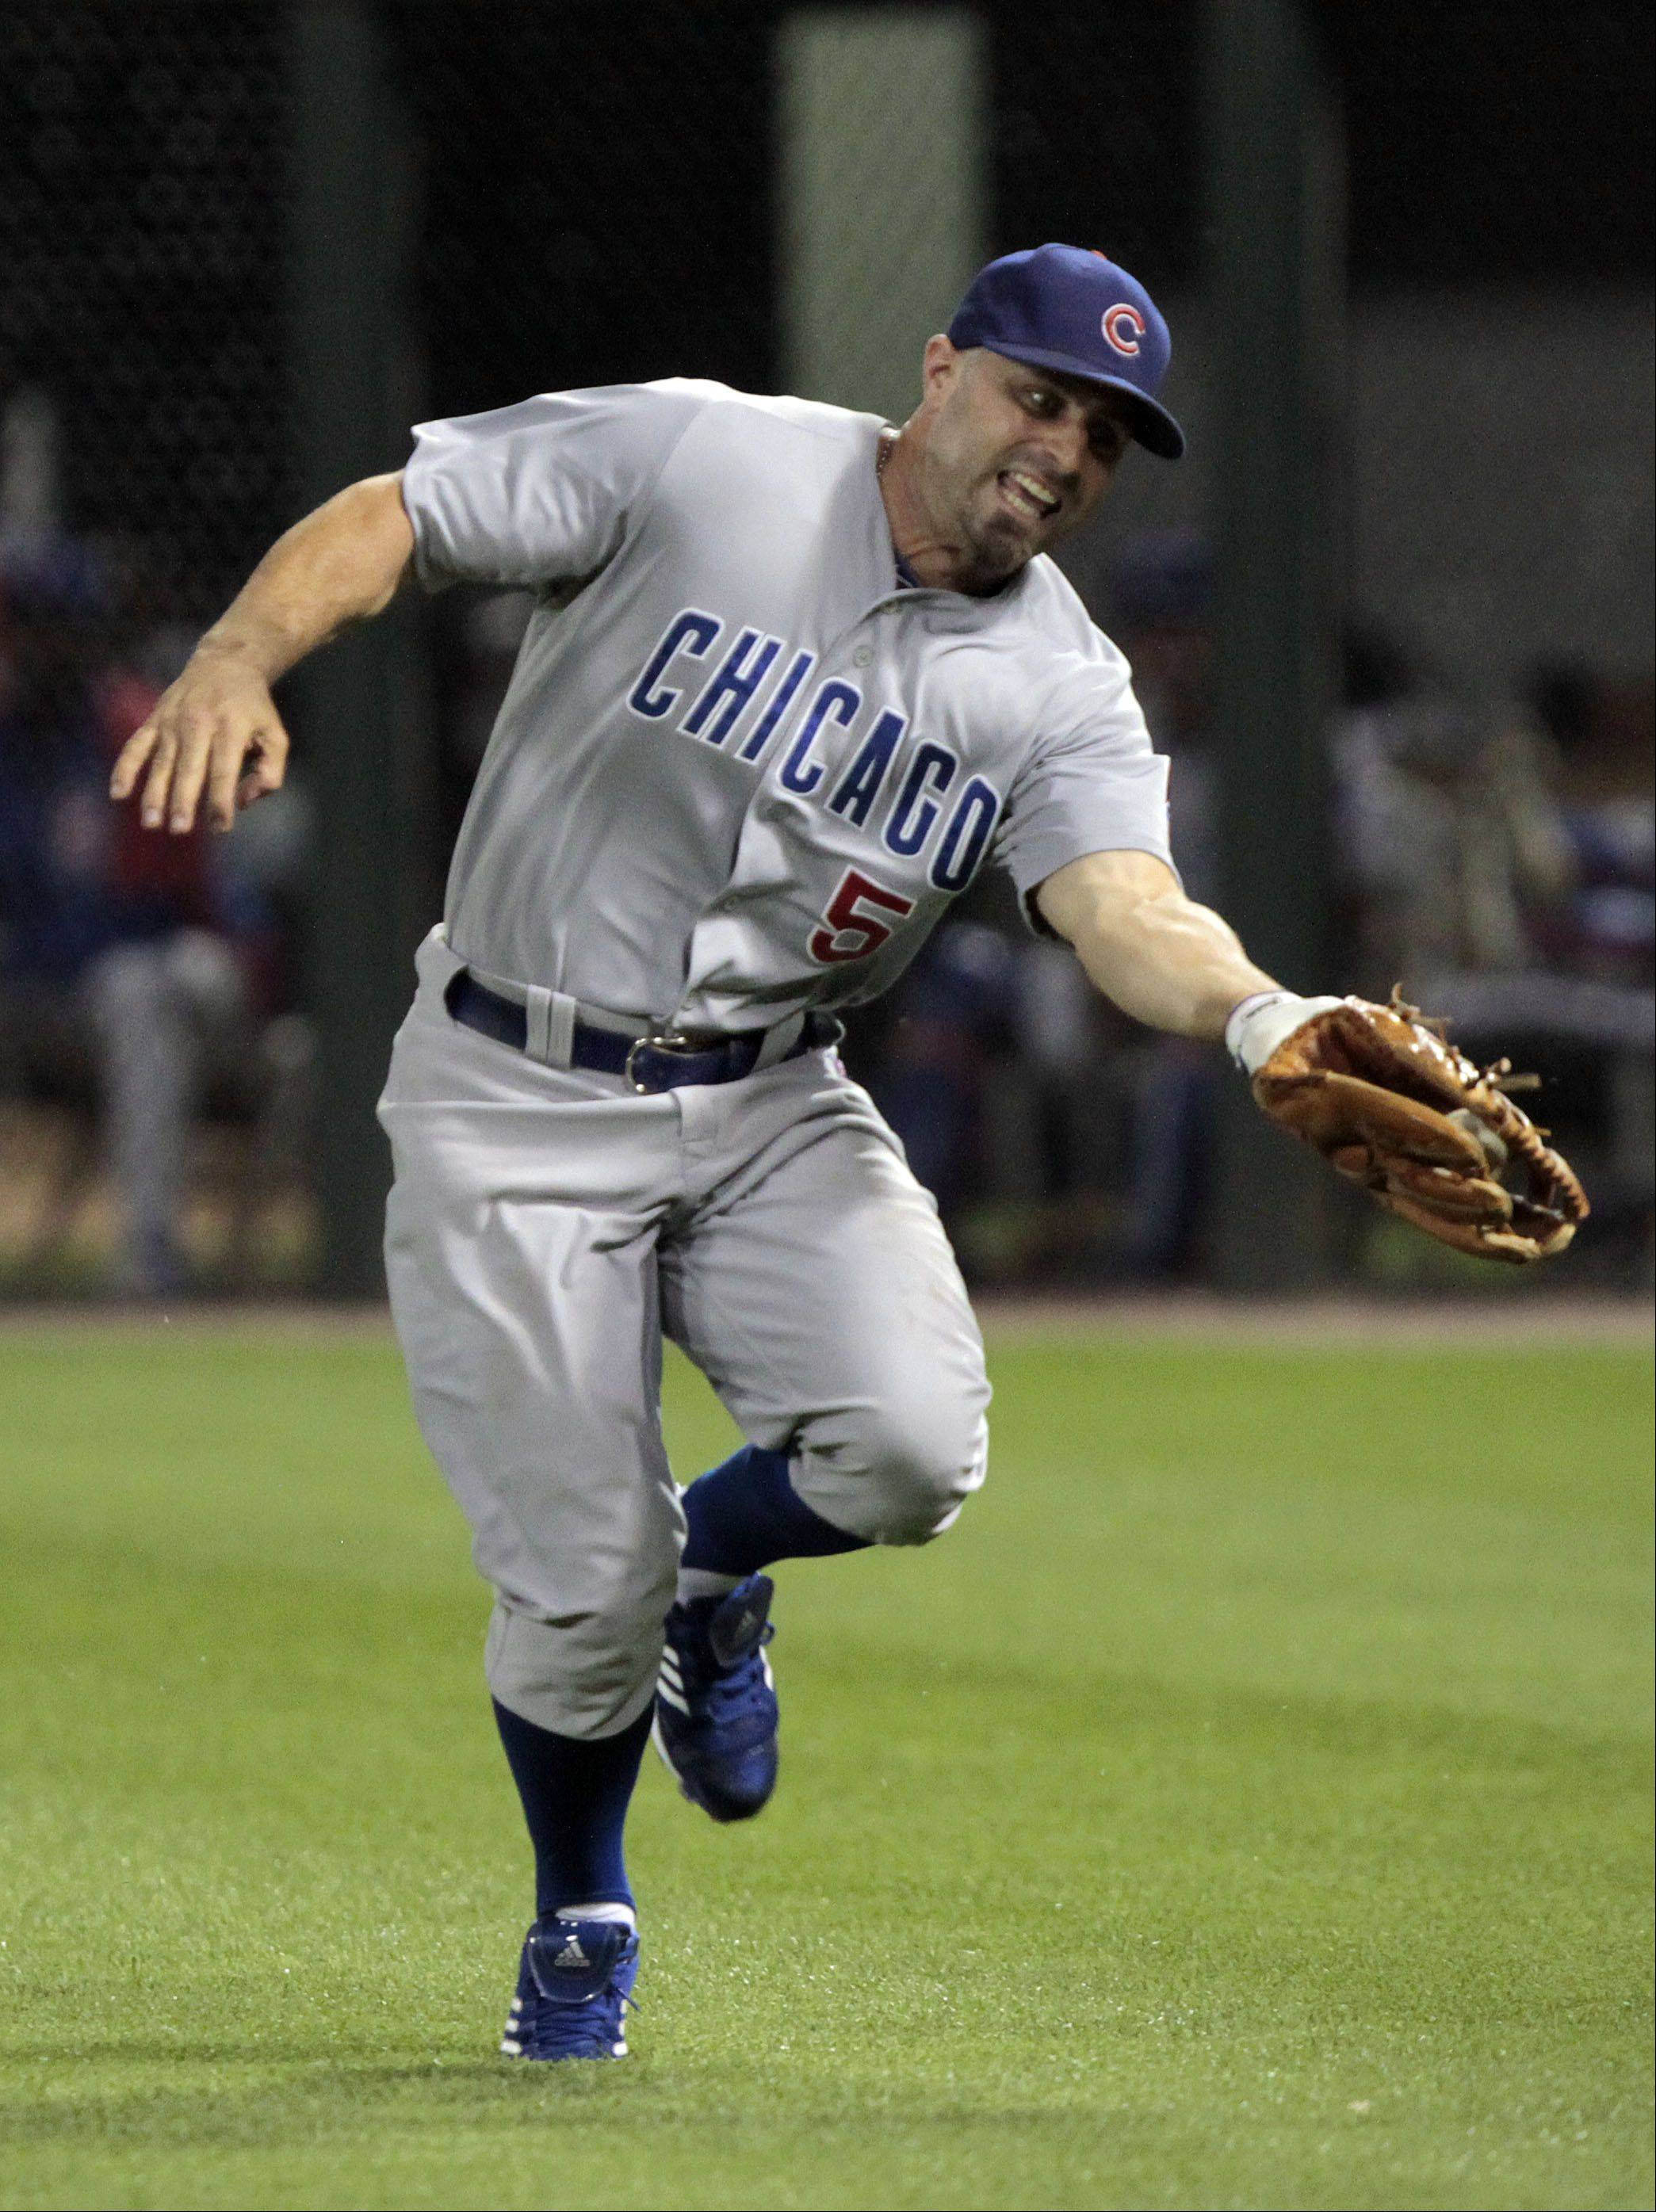 Chicago Cubs' Reed Johnson makes a running catch in the eighth inning.